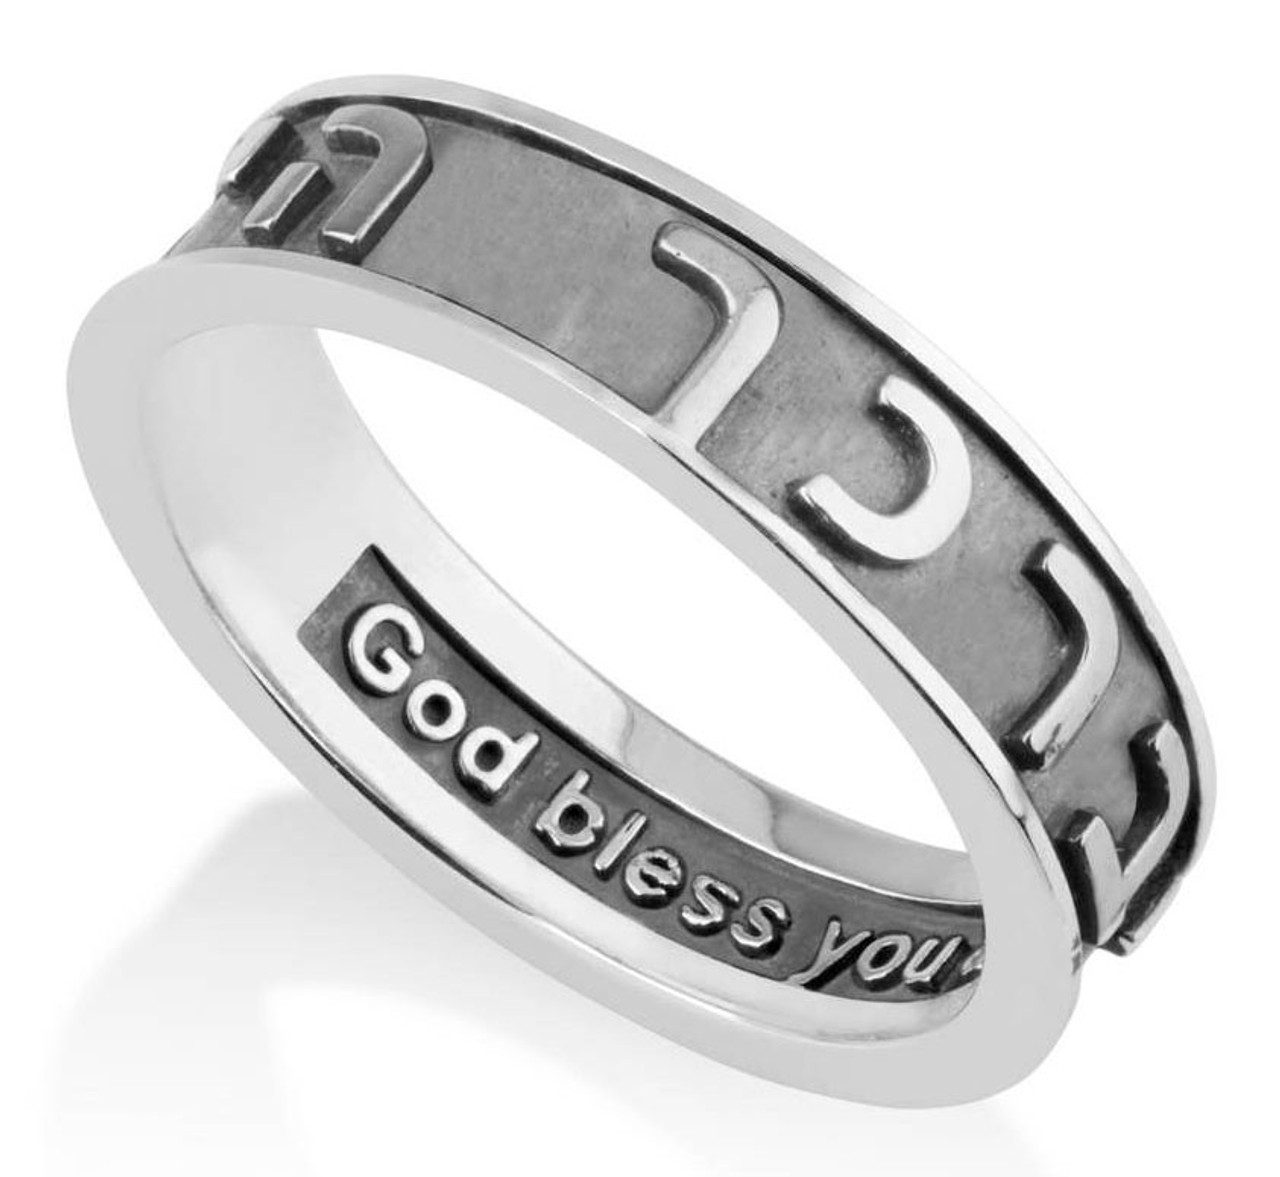 b88f8901ecd2d God Bless You and Protect You Sterling Silver Ring